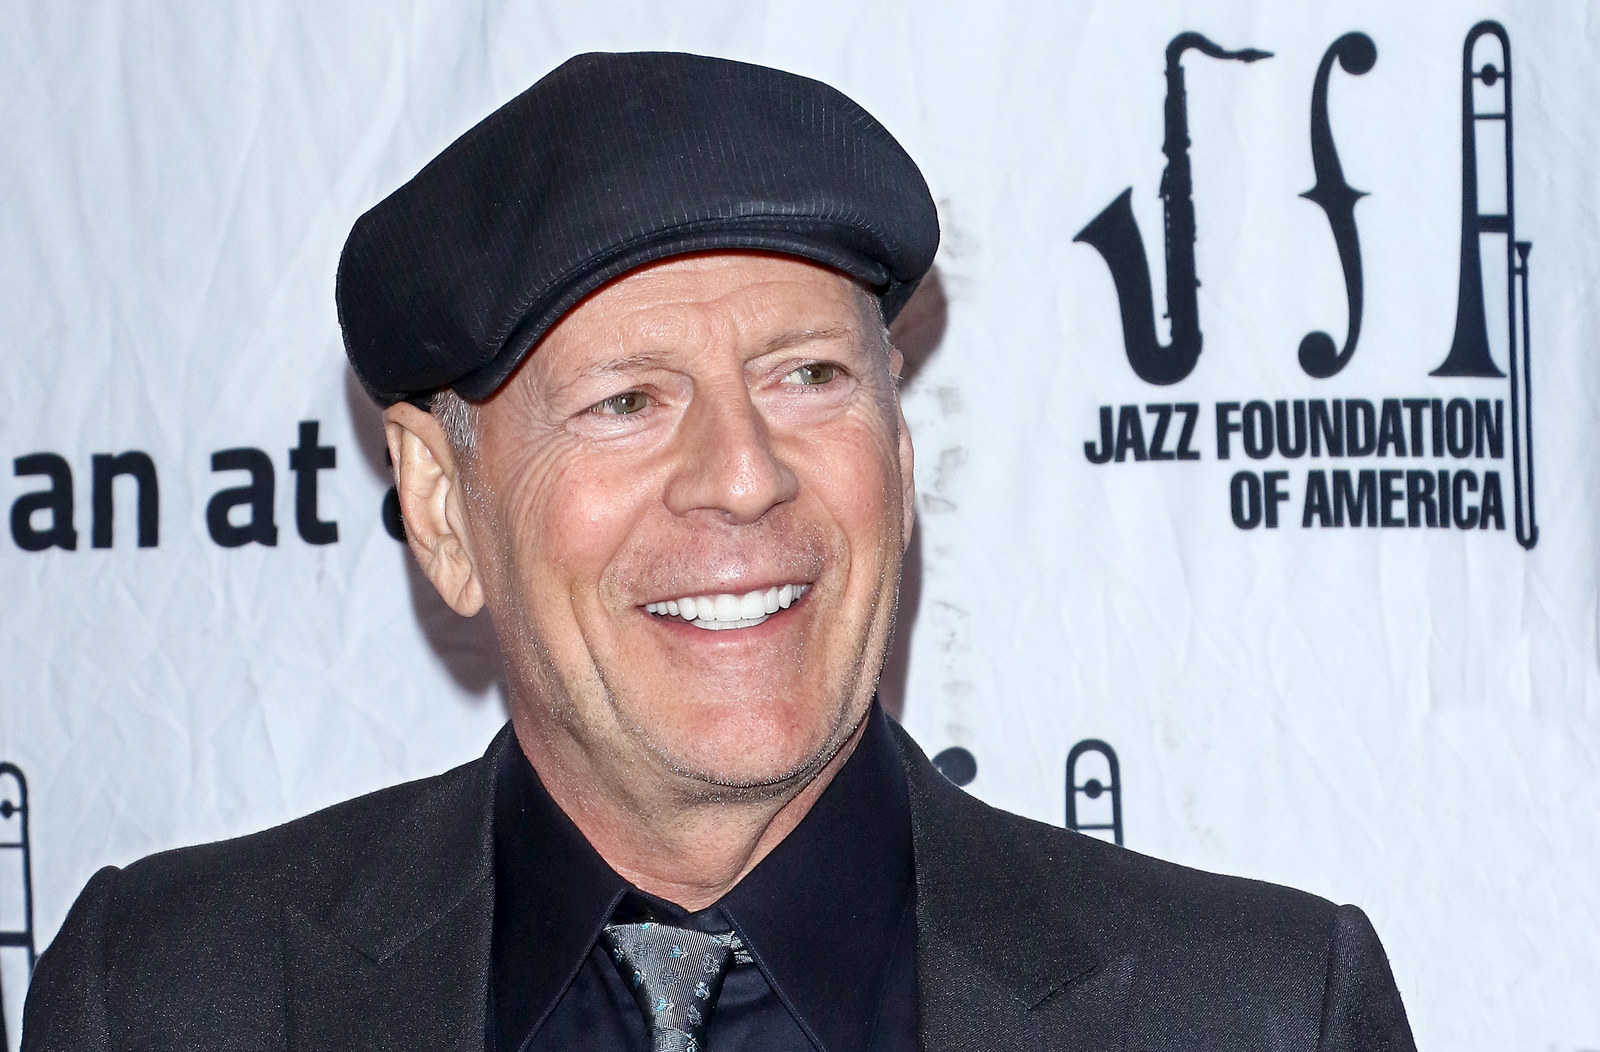 And March 19 will be Bruce Willis' 64th birthday!